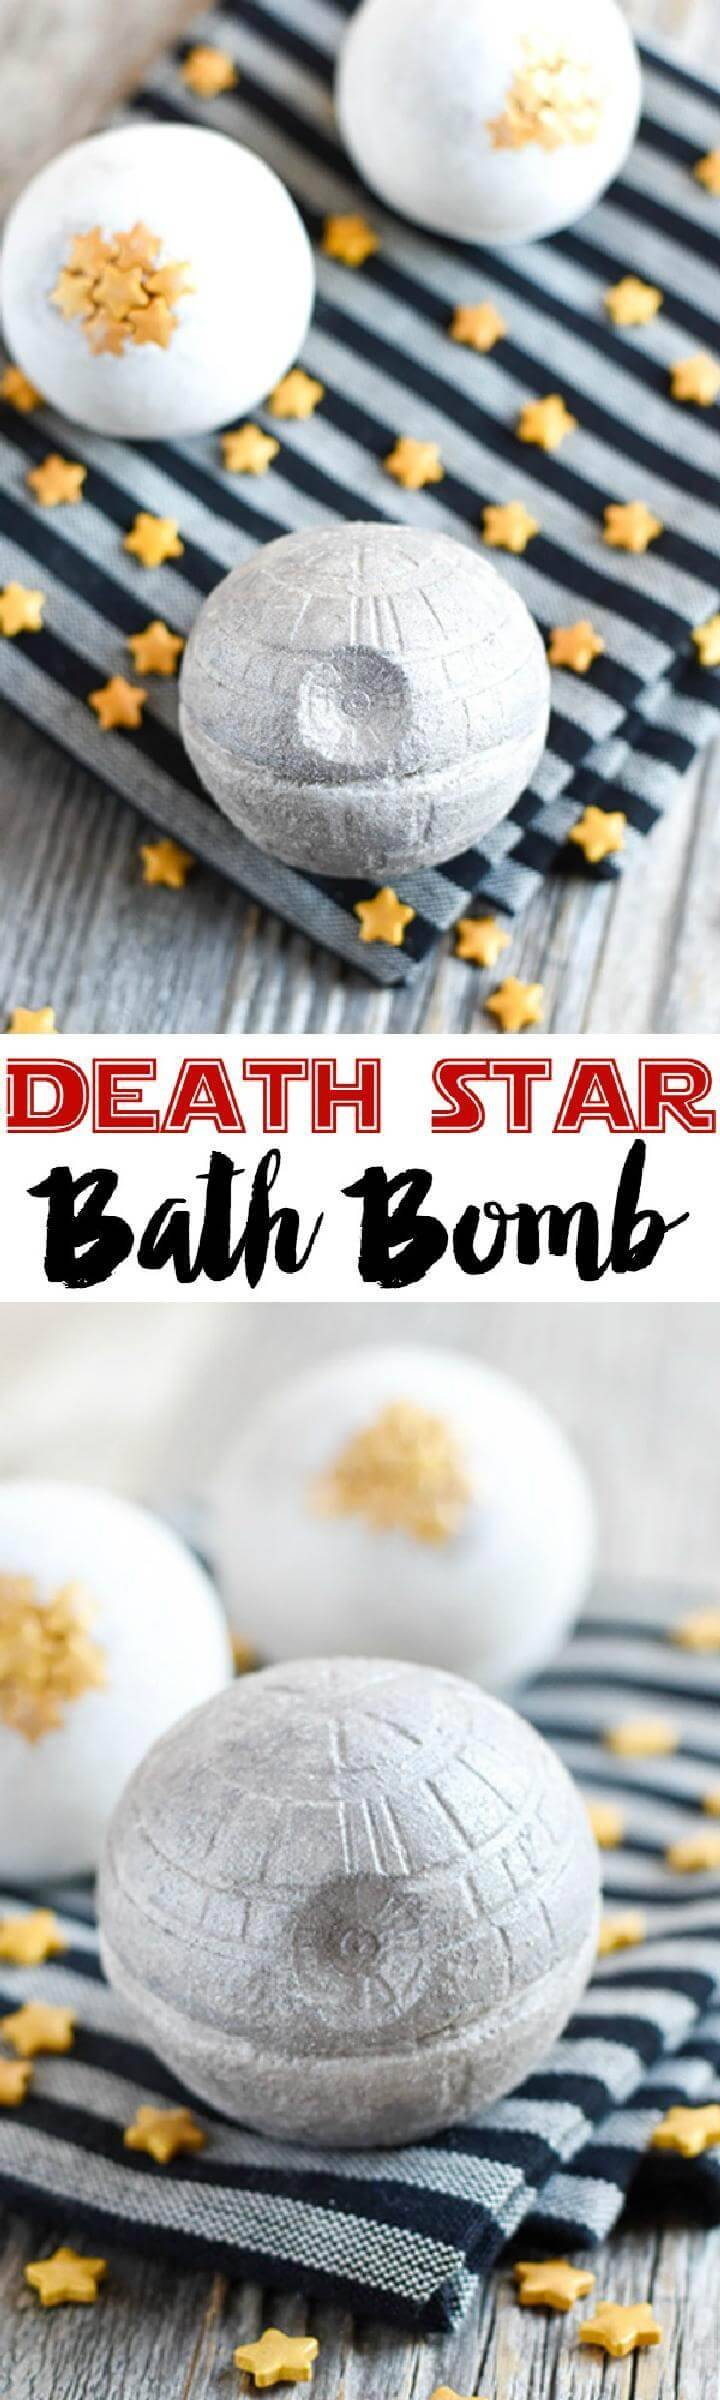 DIY Beautiful Death Star Bath Bomb